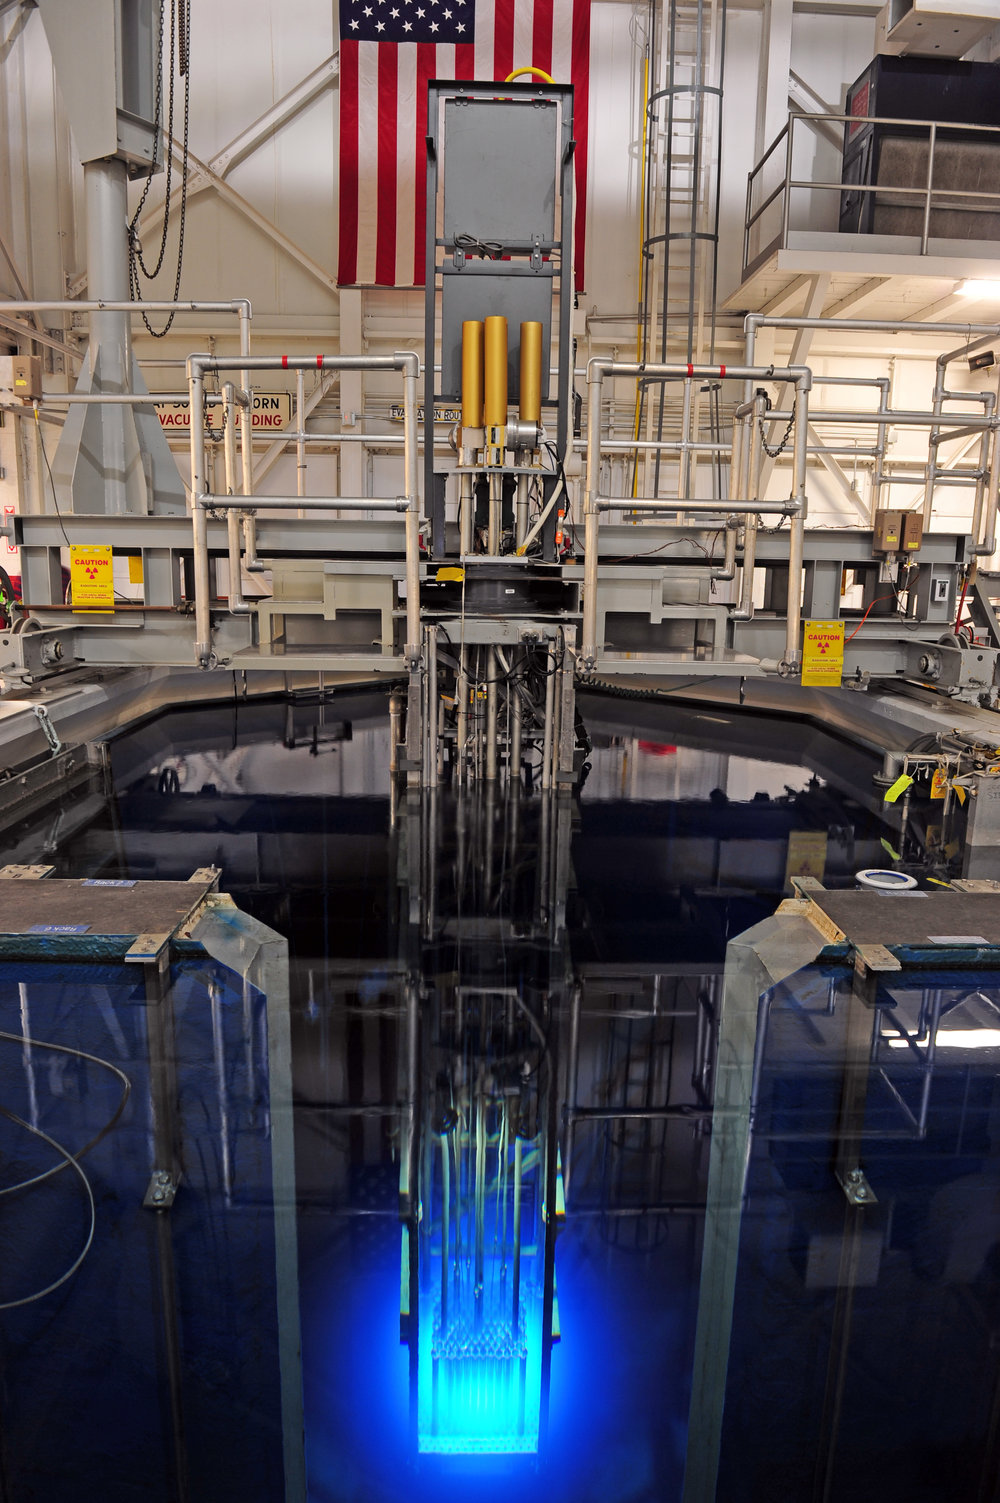 Penn State's Breazeale Nuclear Reactor. The blue light you see coming off the reactor core is known as  Cherenkov radiation .